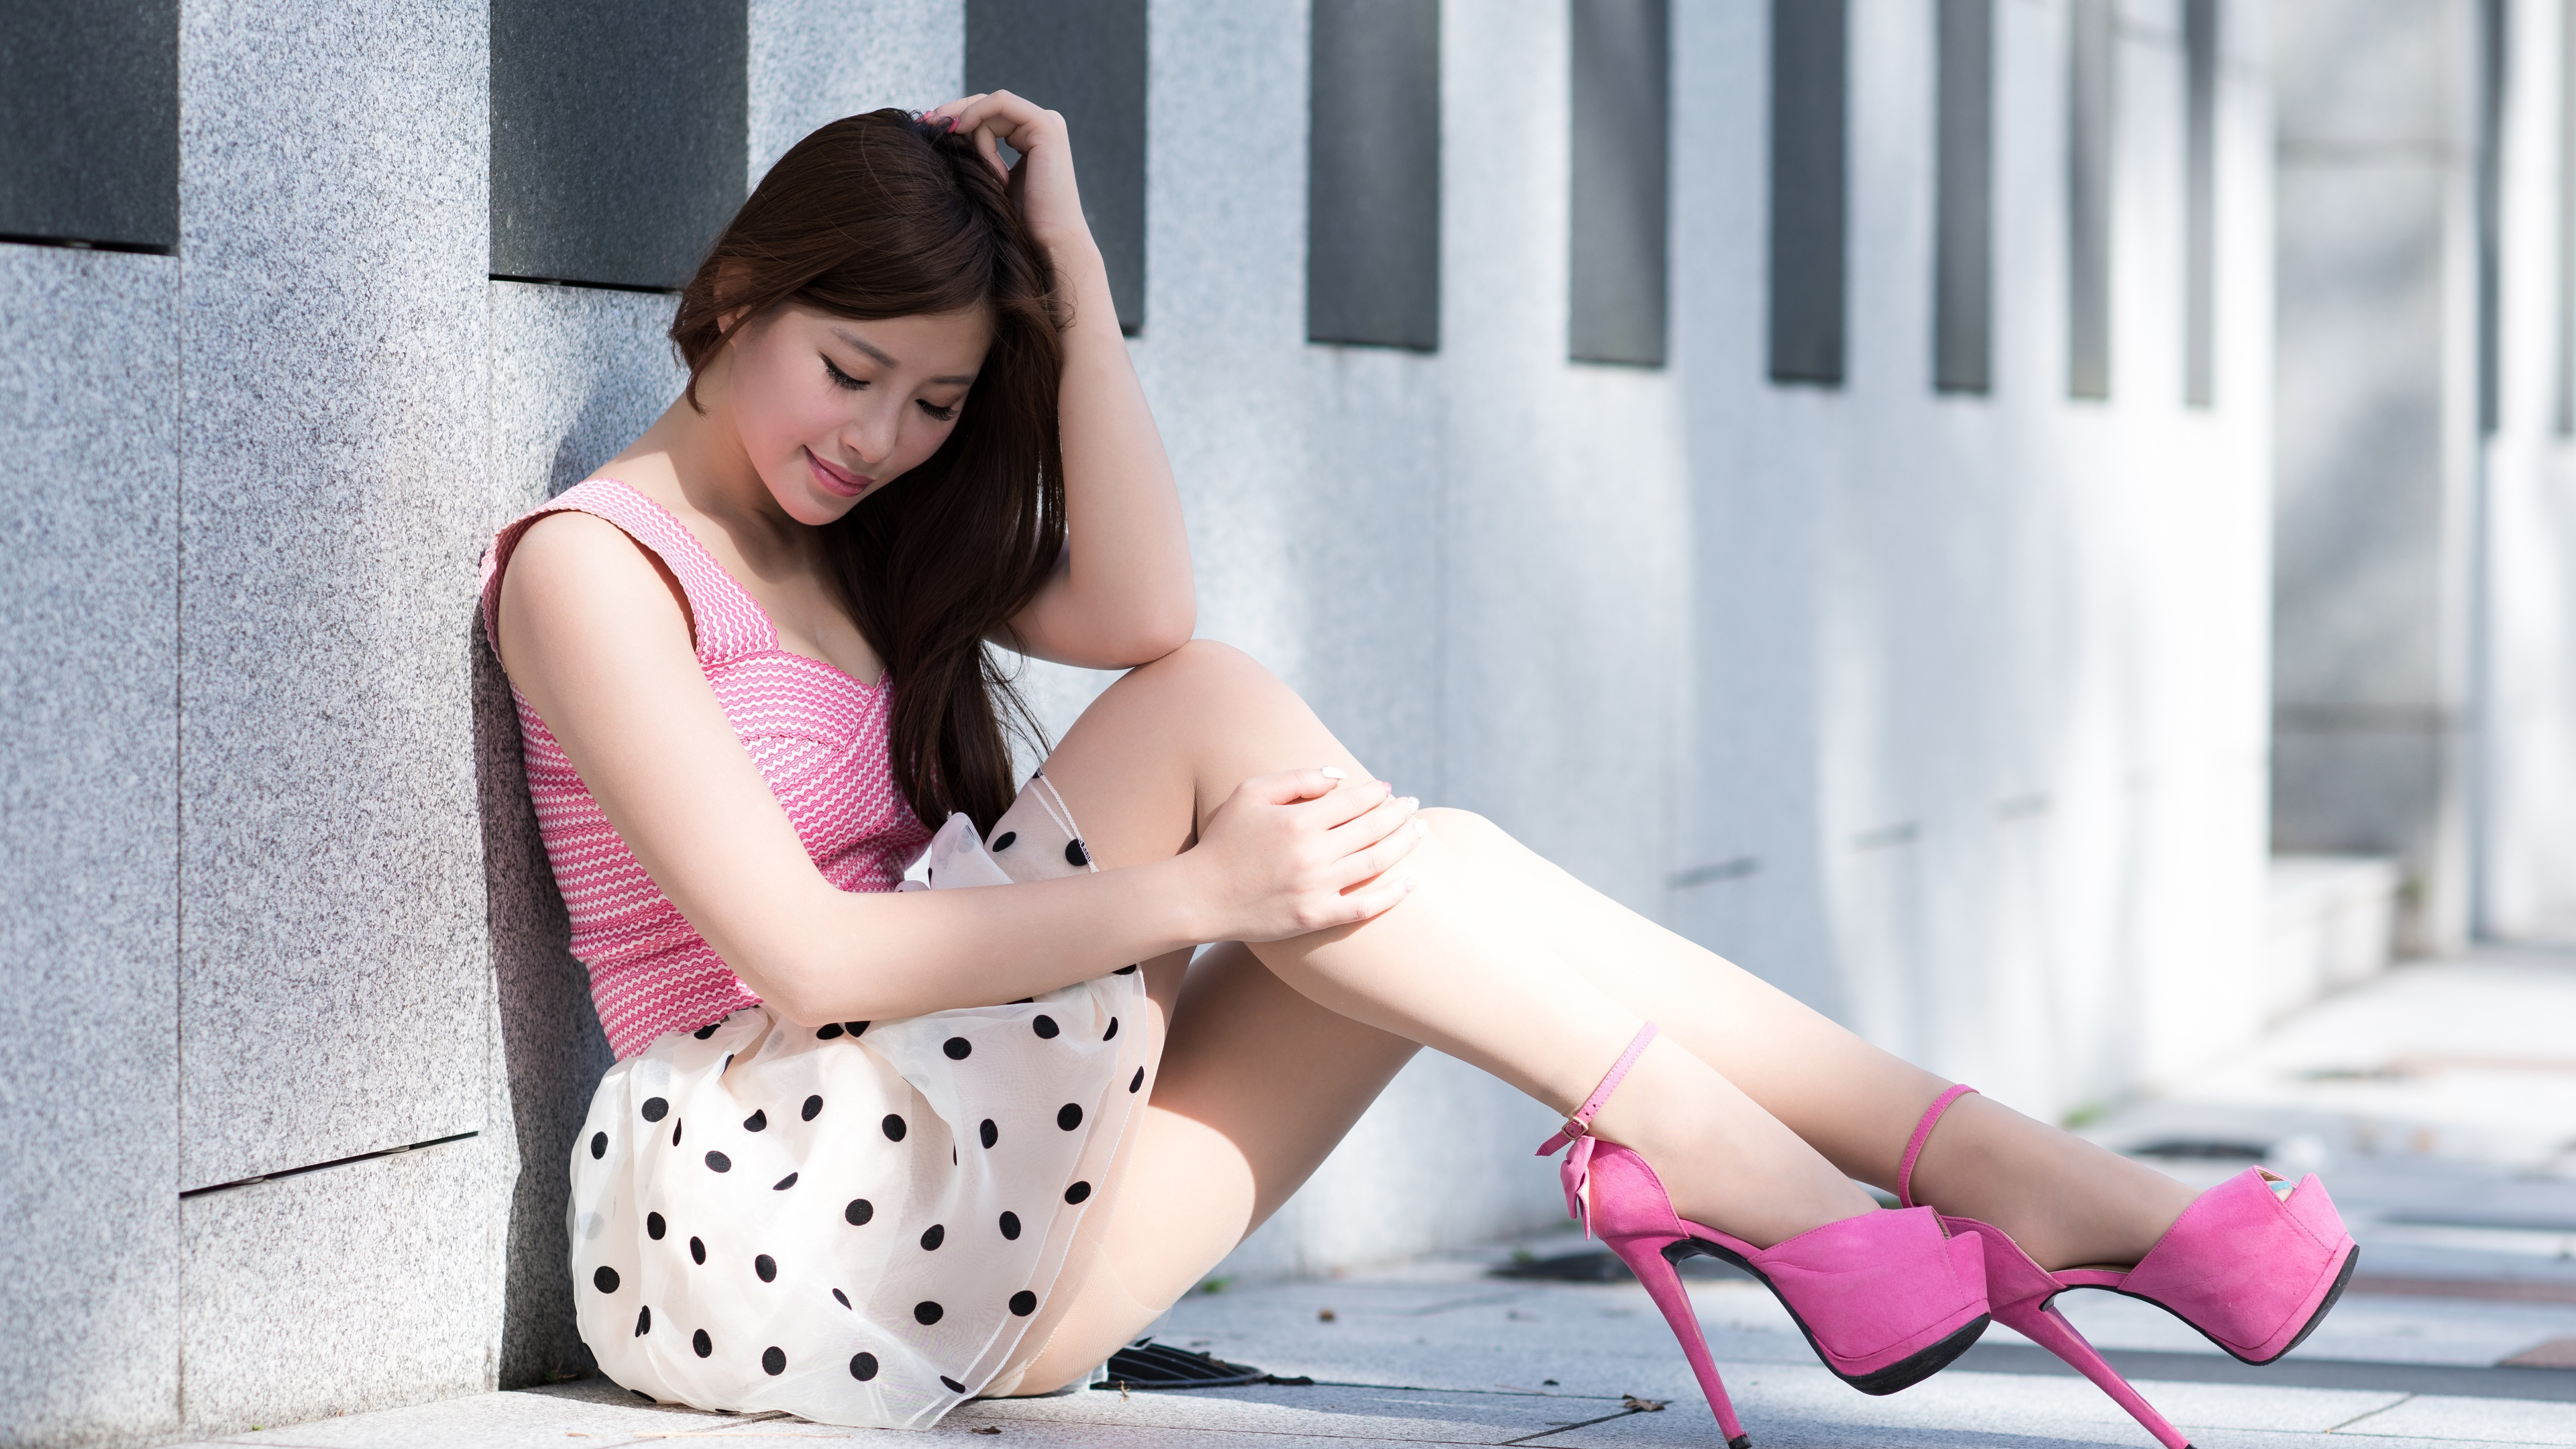 Wallpaper asian girl sit at floor skirt legs heels summer 3840x2160 uhd 4k picture image - Asian schoolgirl wallpaper ...